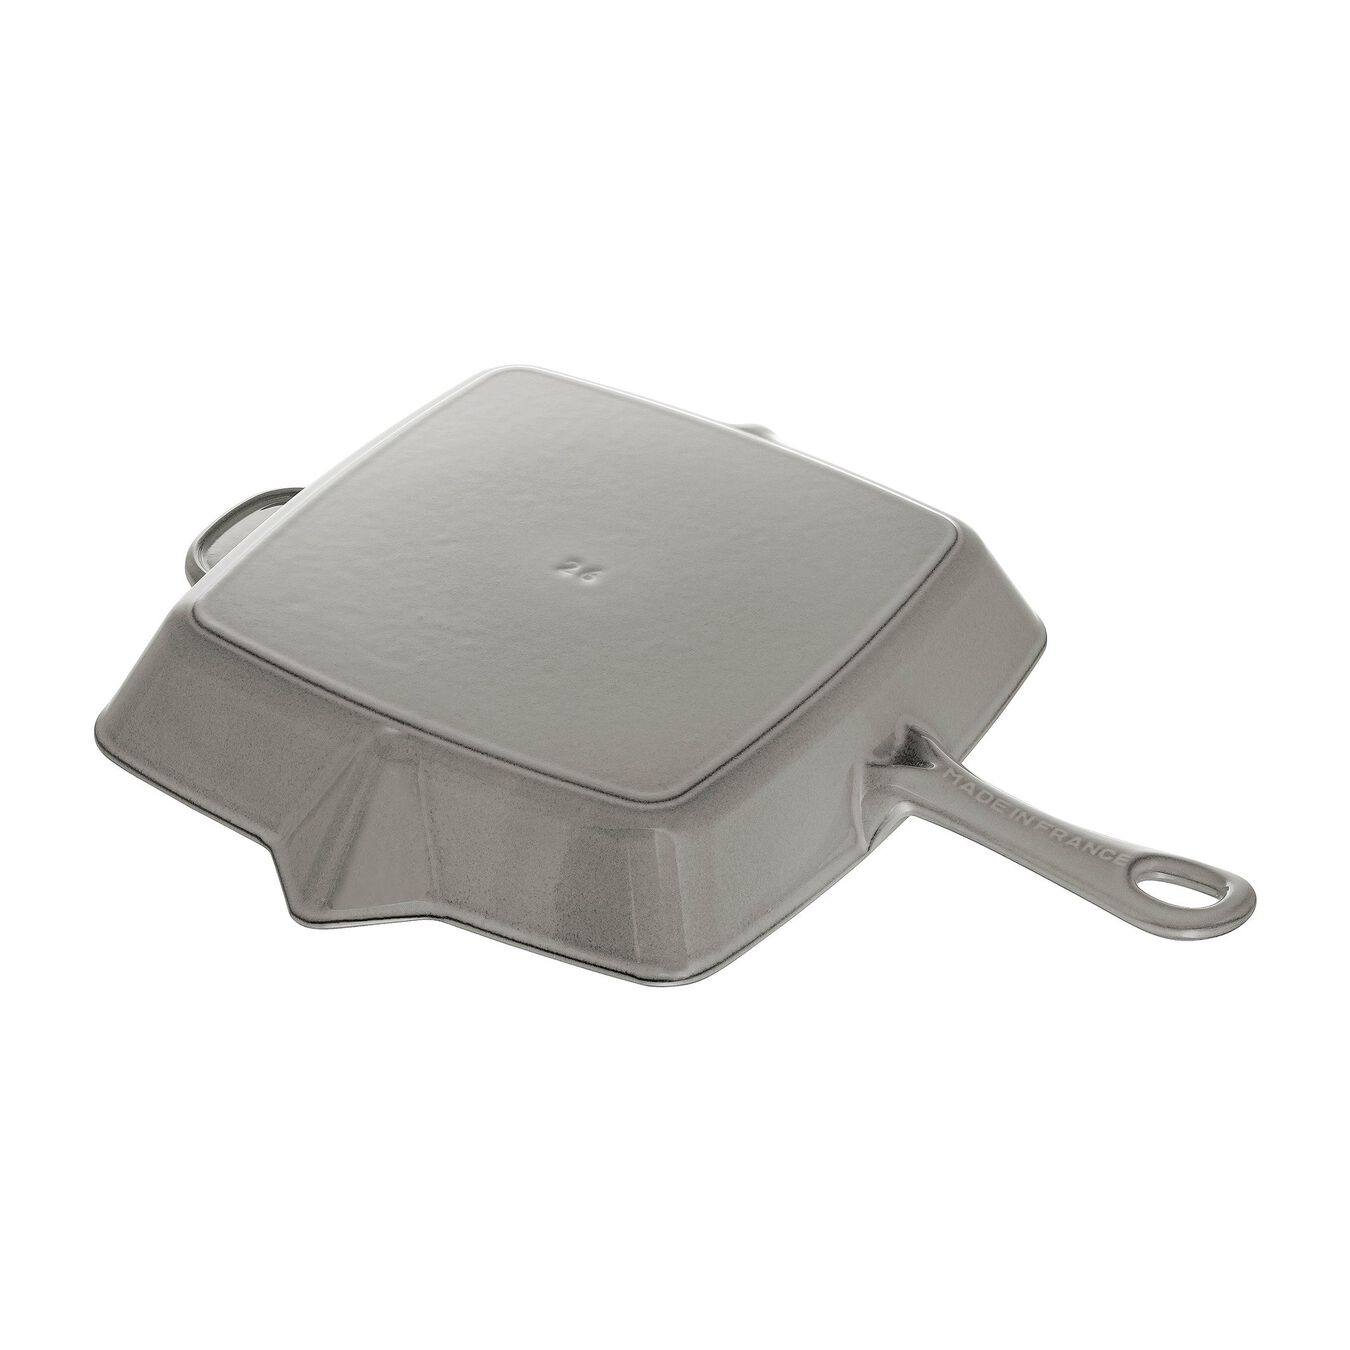 10-inch Square Grill Pan - Graphite Grey,,large 4